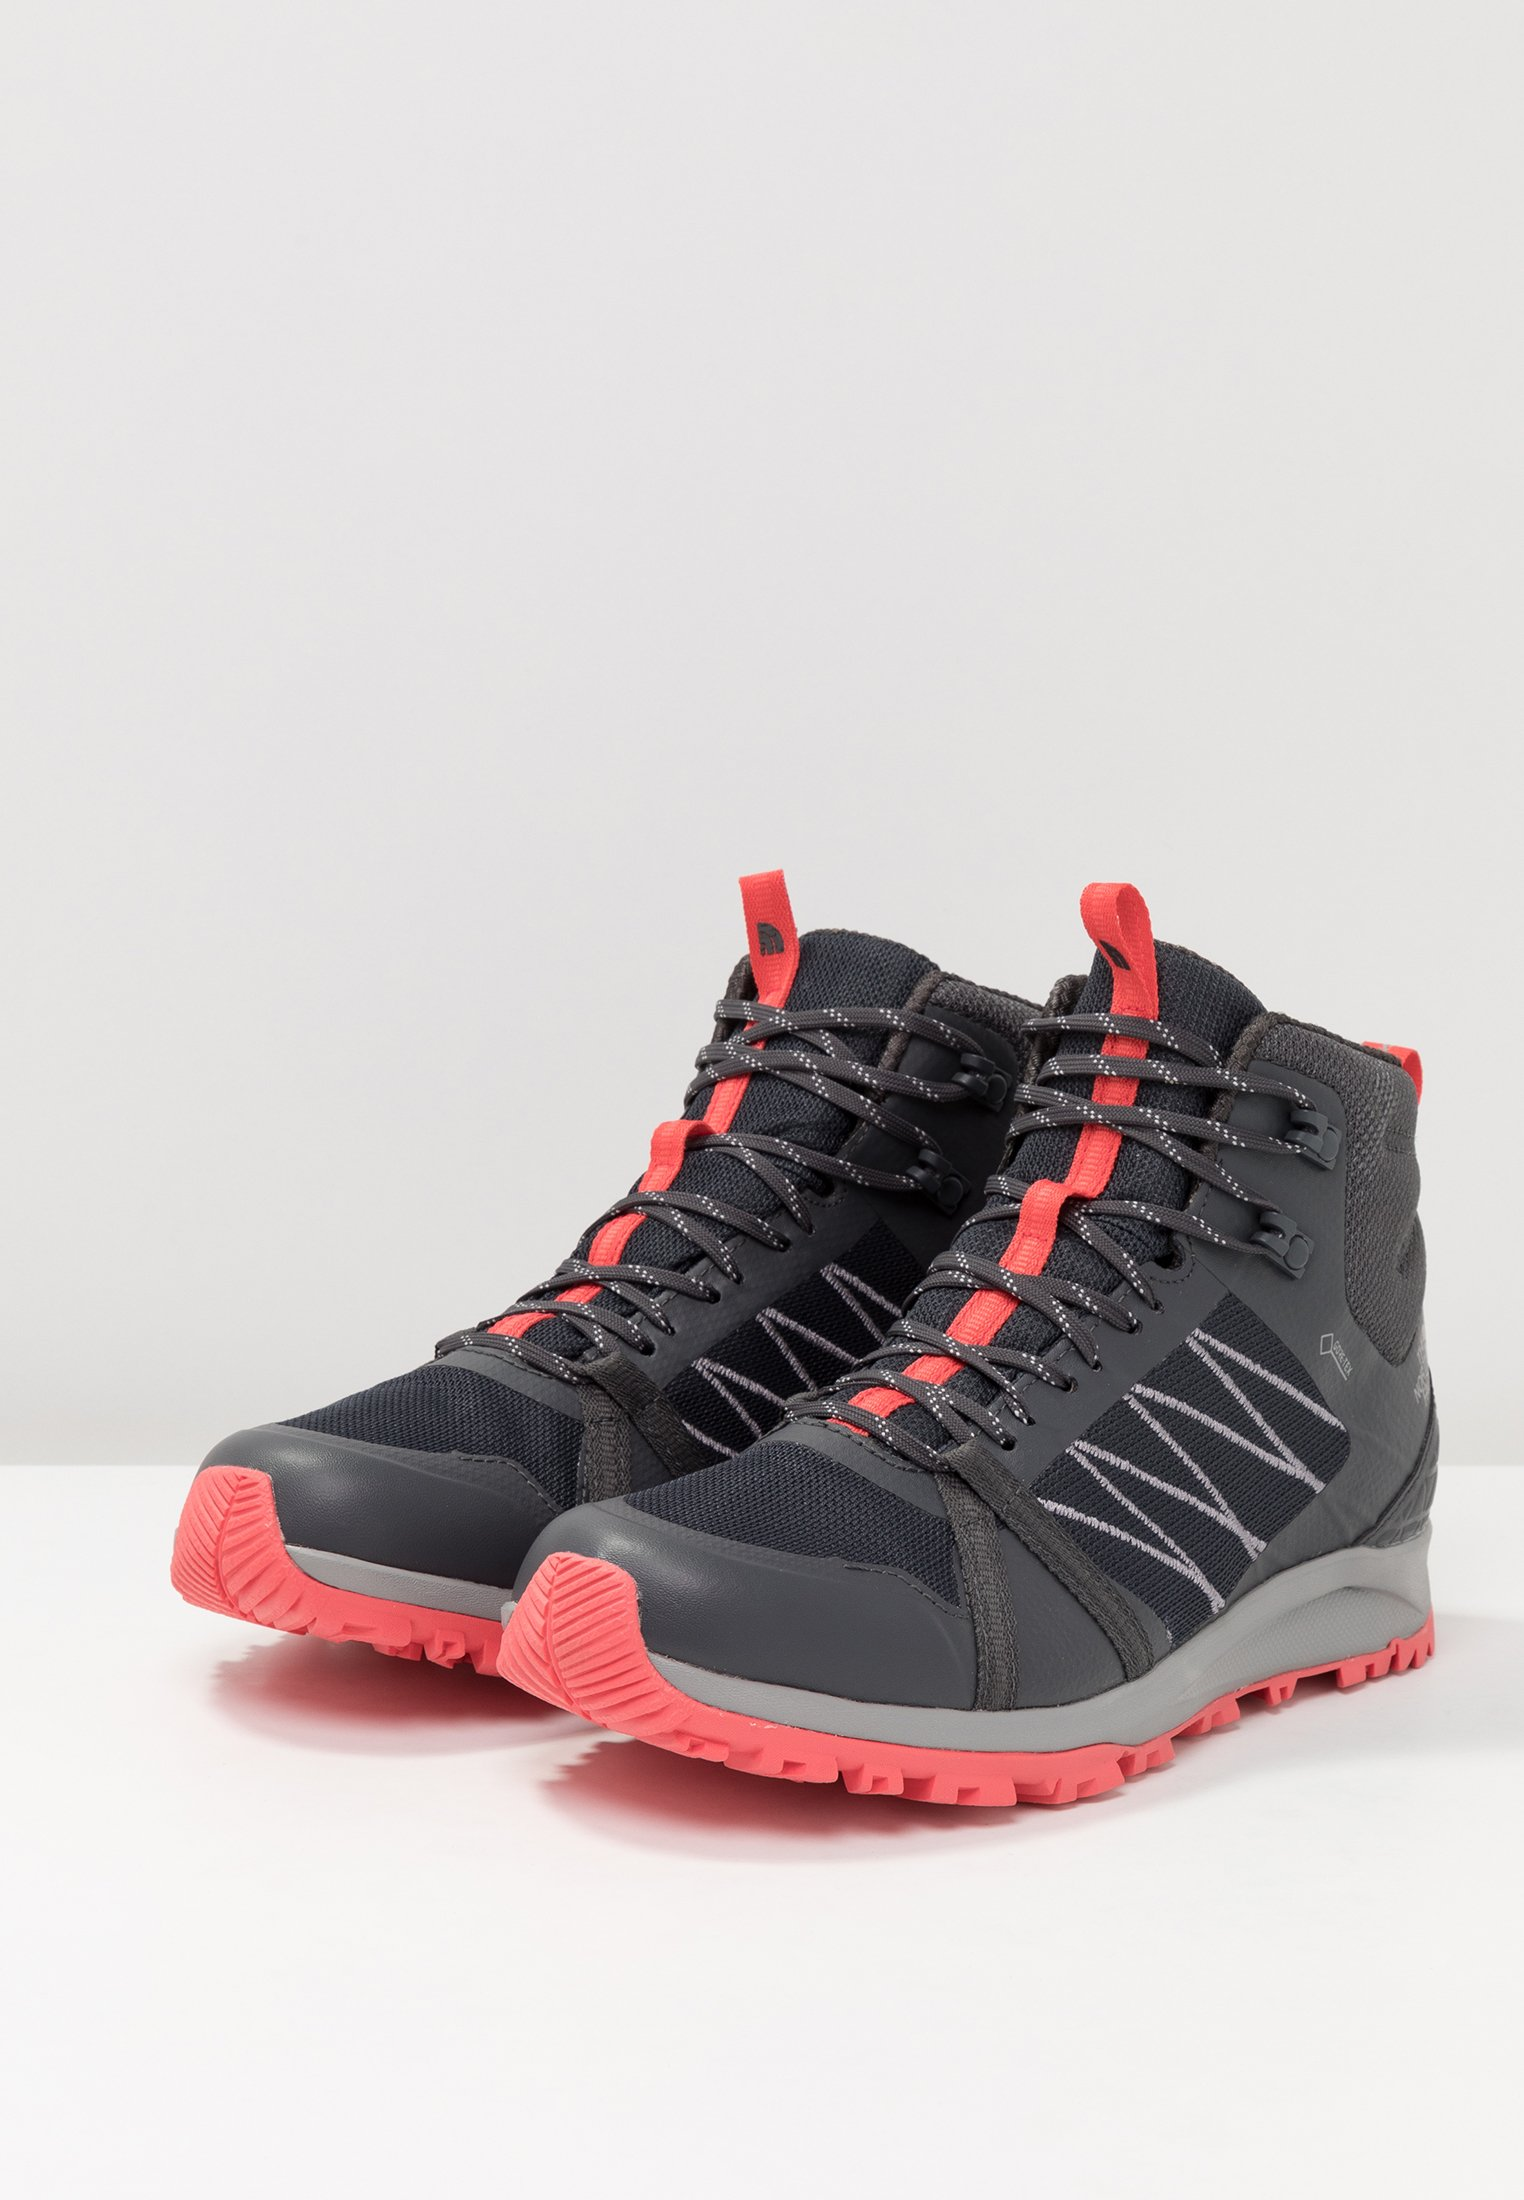 The Grey Mid Ebony GtxChaussures fiesta Red North Face Marche De u1JlF3TcK